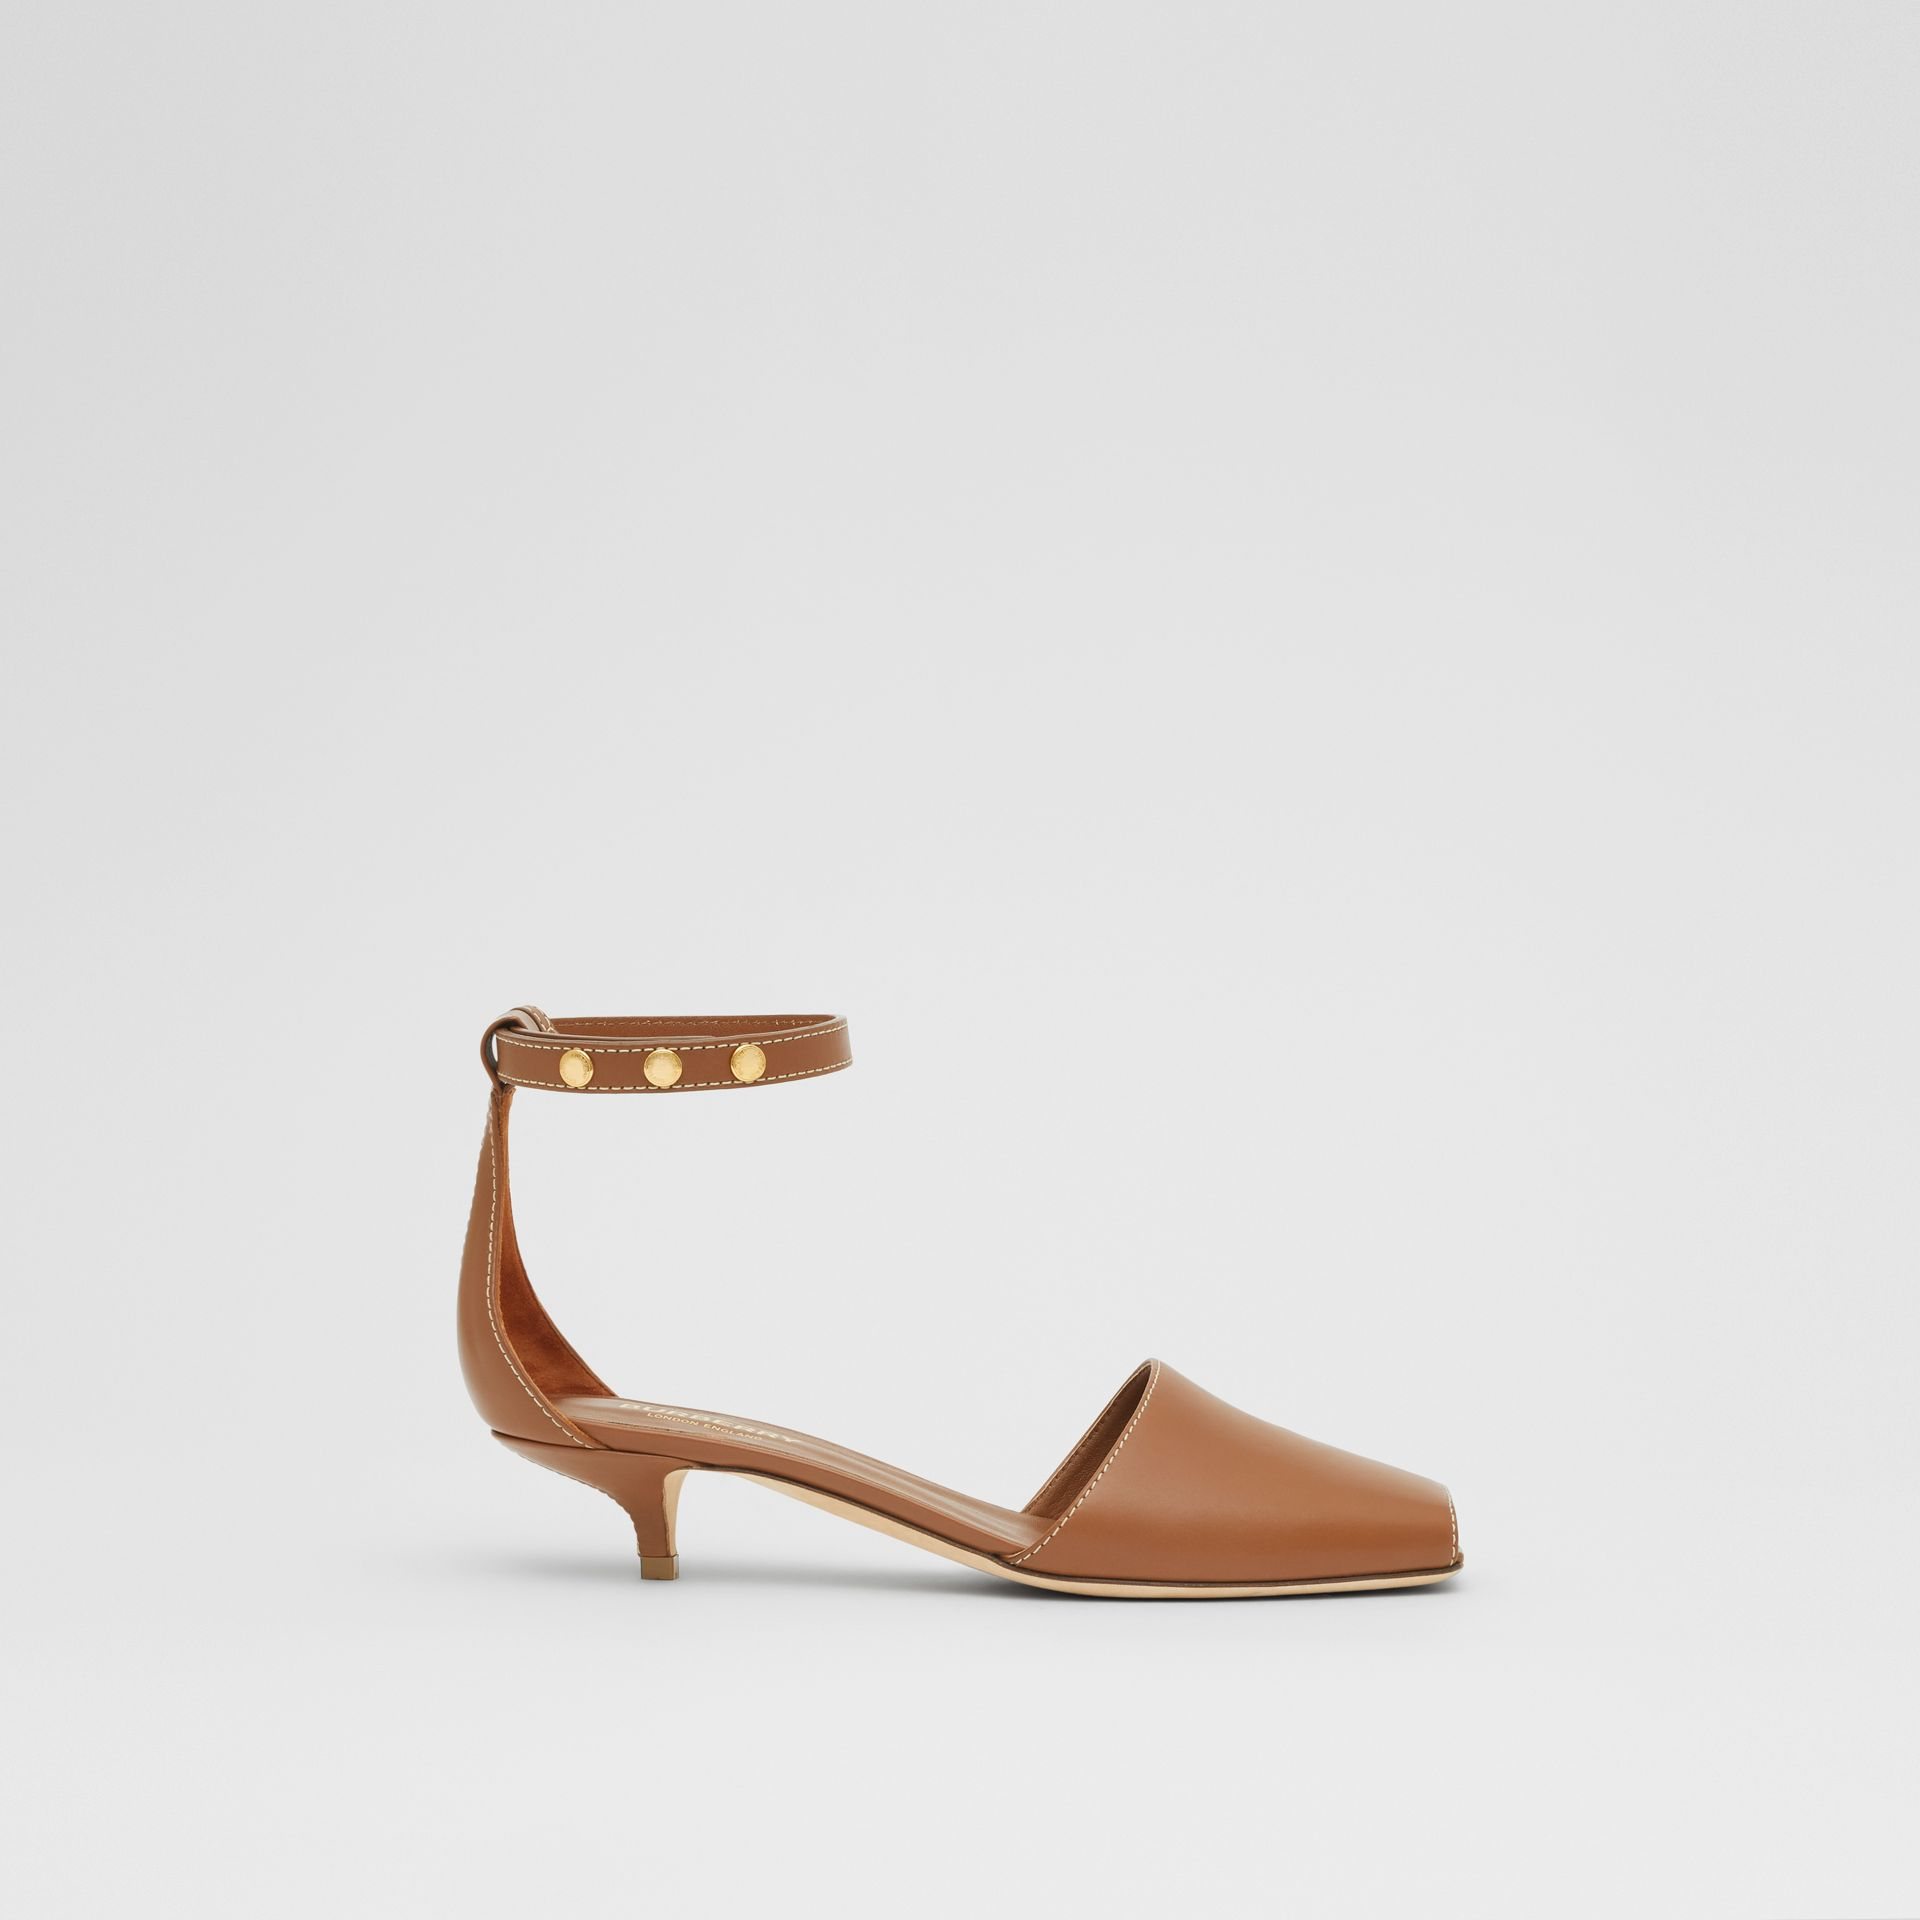 Triple Stud Leather Kitten-heel Sandals in Tan - Women | Burberry - gallery image 4